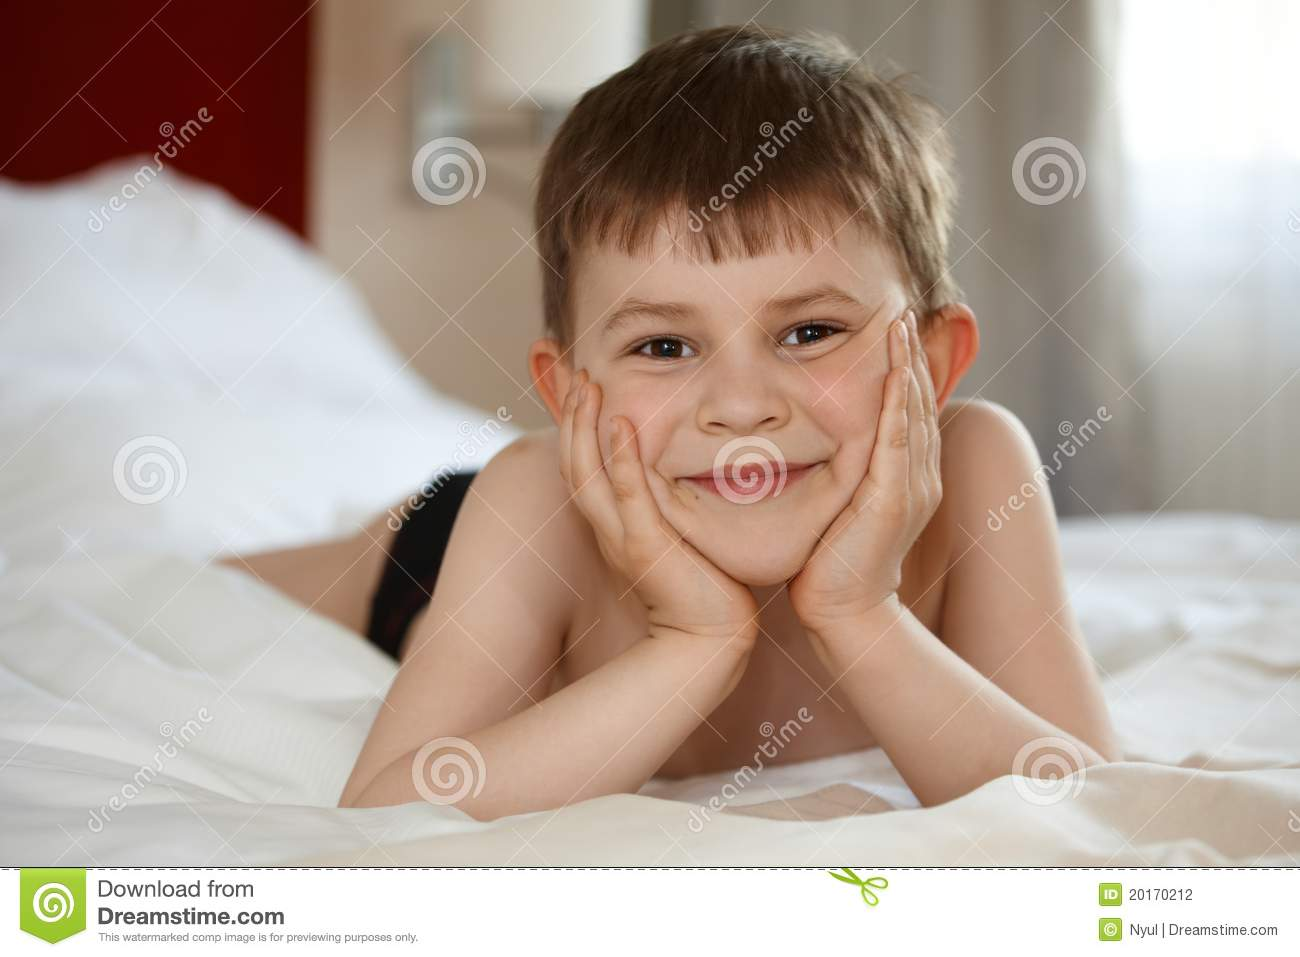 Cute Little Kid Smiling In Bed Stock Photography